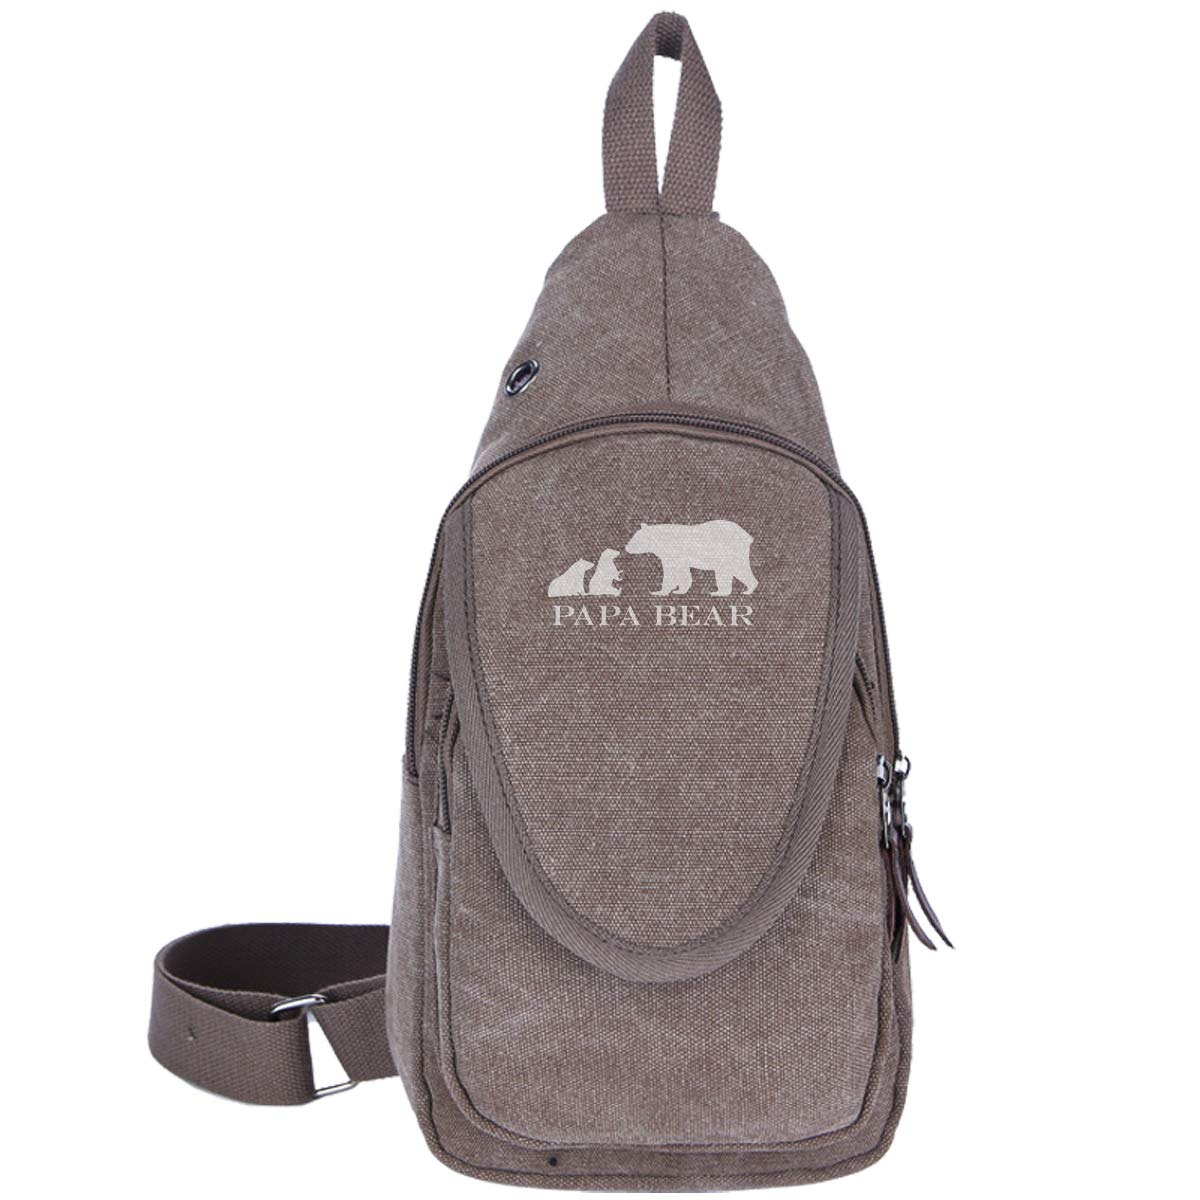 693646983f4a Amazon.com: Papa Bear Canvas Sling Bag Rucksack For Men&Women ...